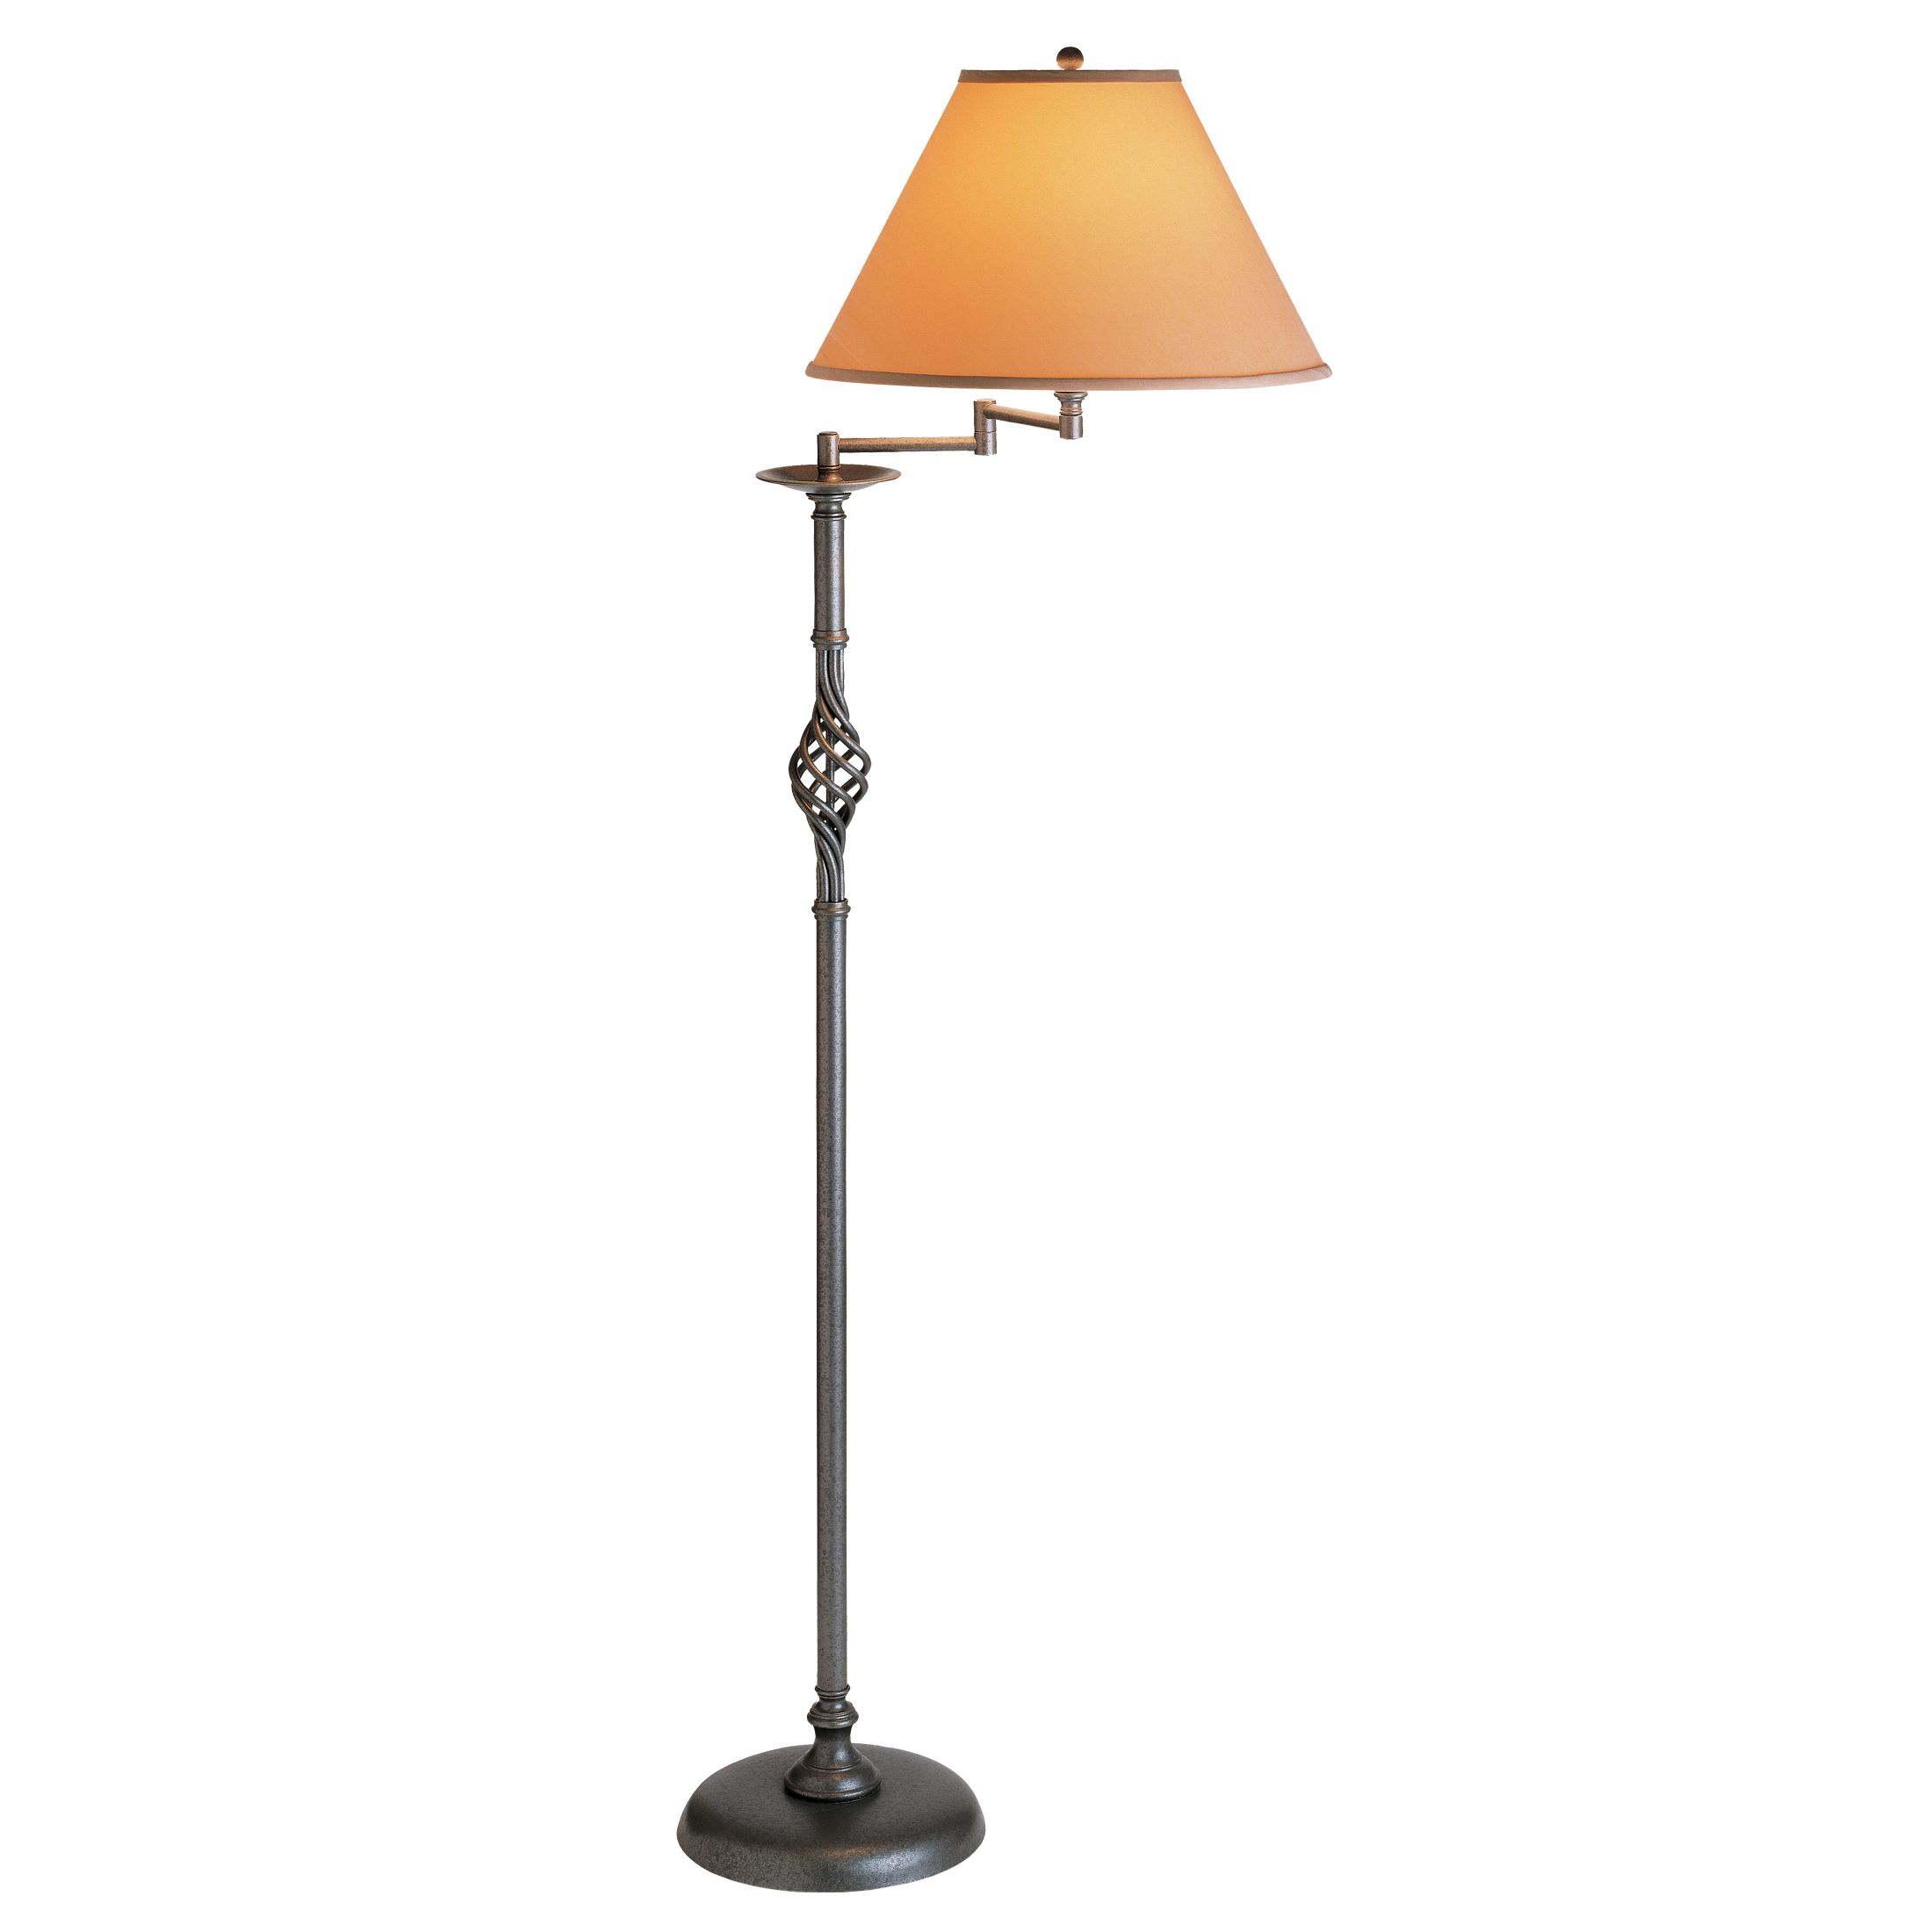 Thumbnail for Twist Basket Swing Arm Floor Lamp